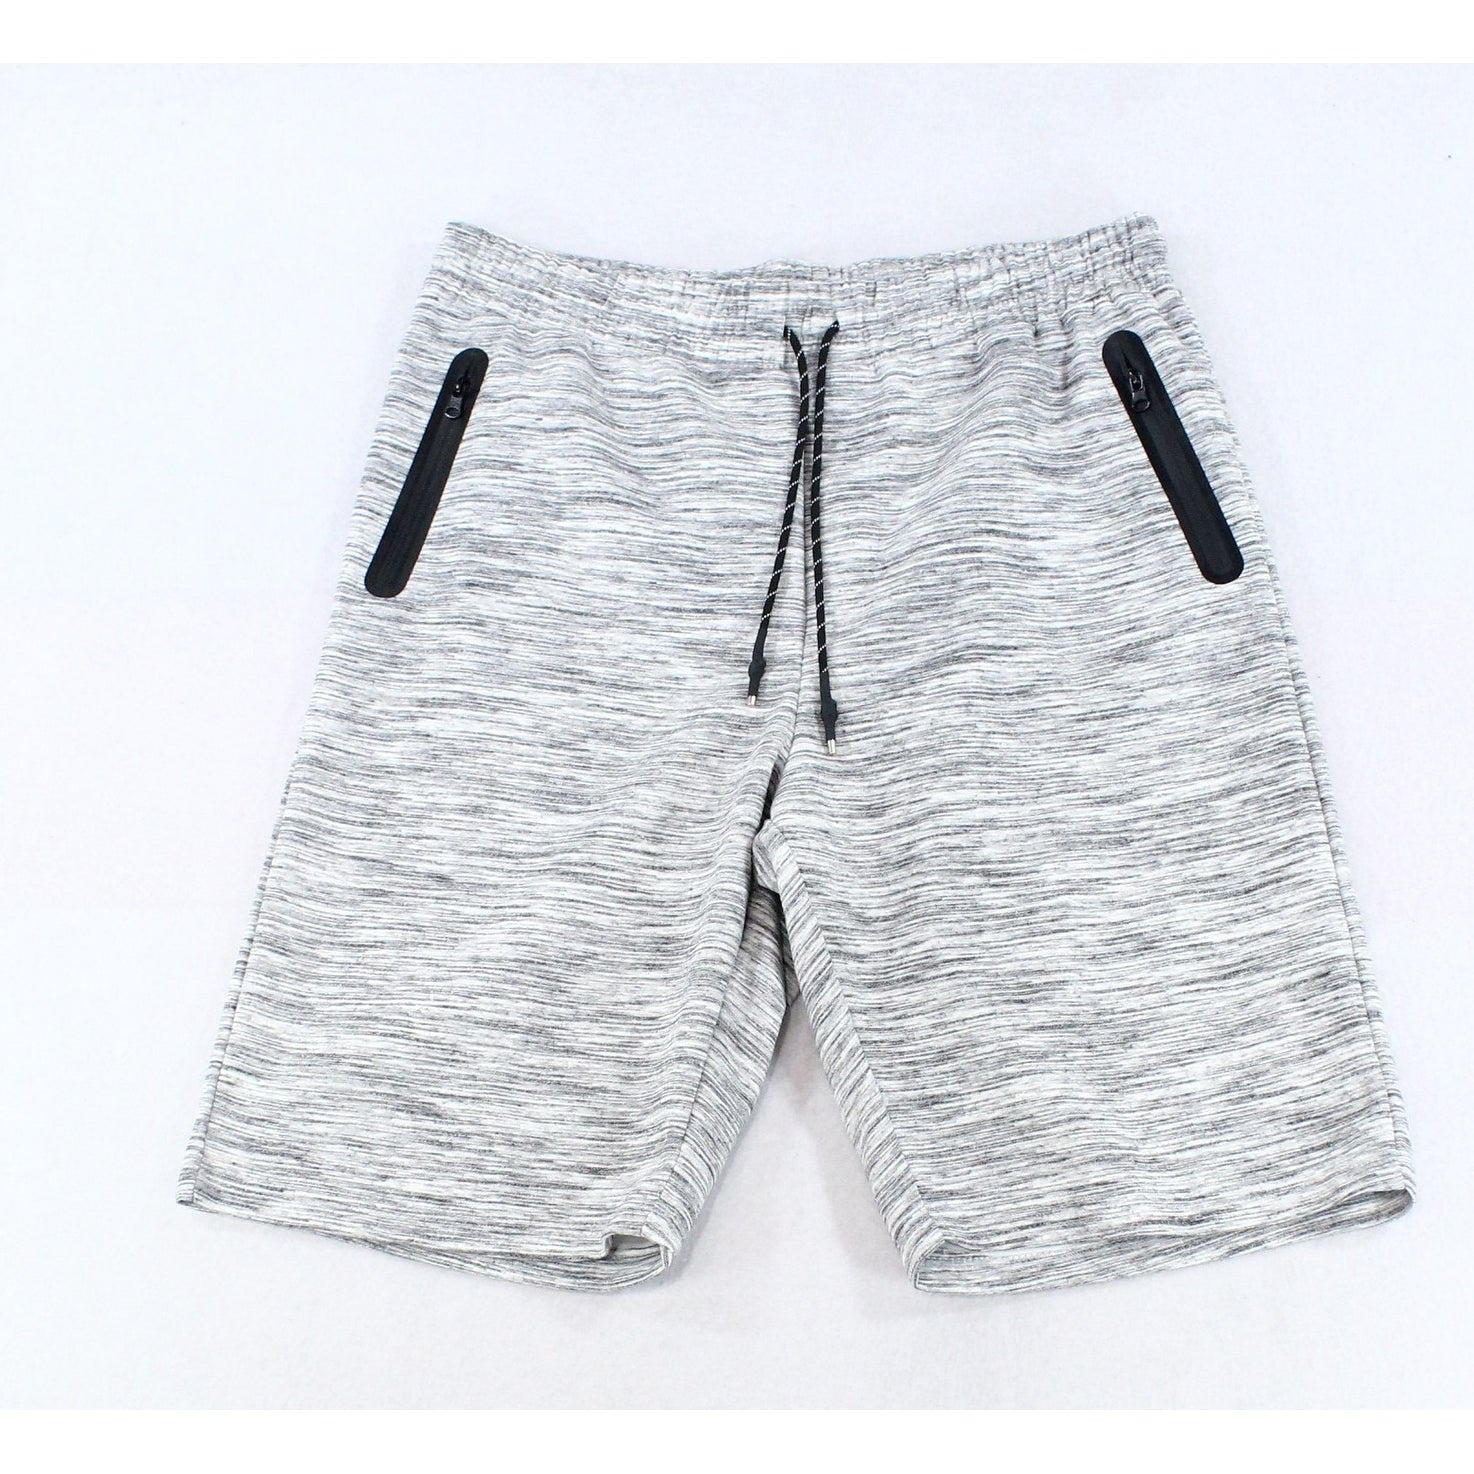 6714191a3a Ring Of Fire Men's Clothing | Shop our Best Clothing & Shoes Deals Online at  Overstock